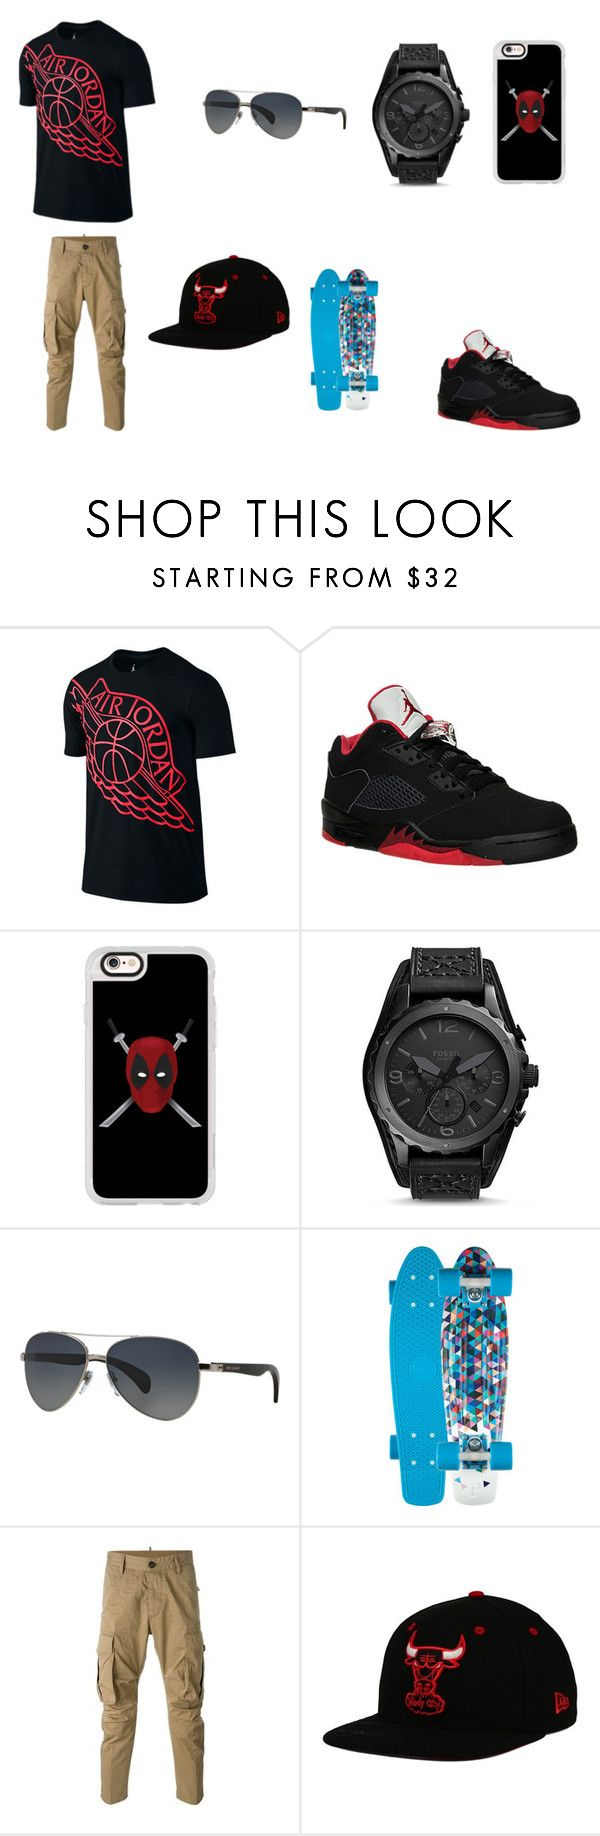 """Air Jordan Swag pt.1"" by sirrekage ❤ liked on Polyvore featuring Jordan Brand, NIKE, Casetify, FOSSIL, Bulgari, Dsquared2, New Era, men's fashion and menswear"